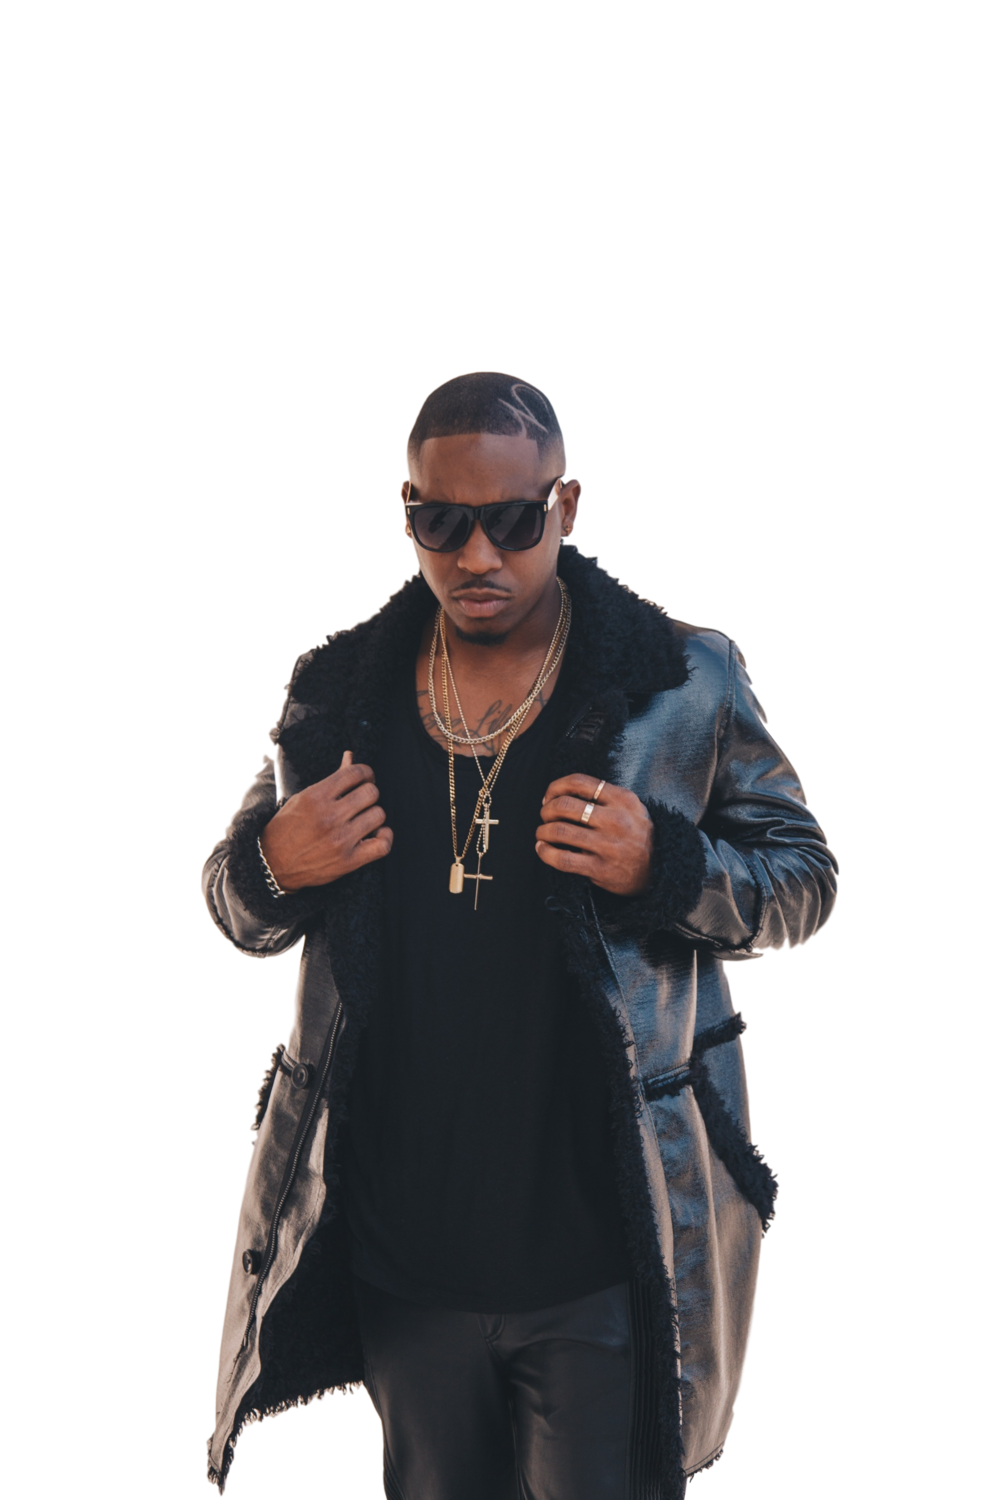 Antonio Ramsey_clipped_rev_1 (1).png